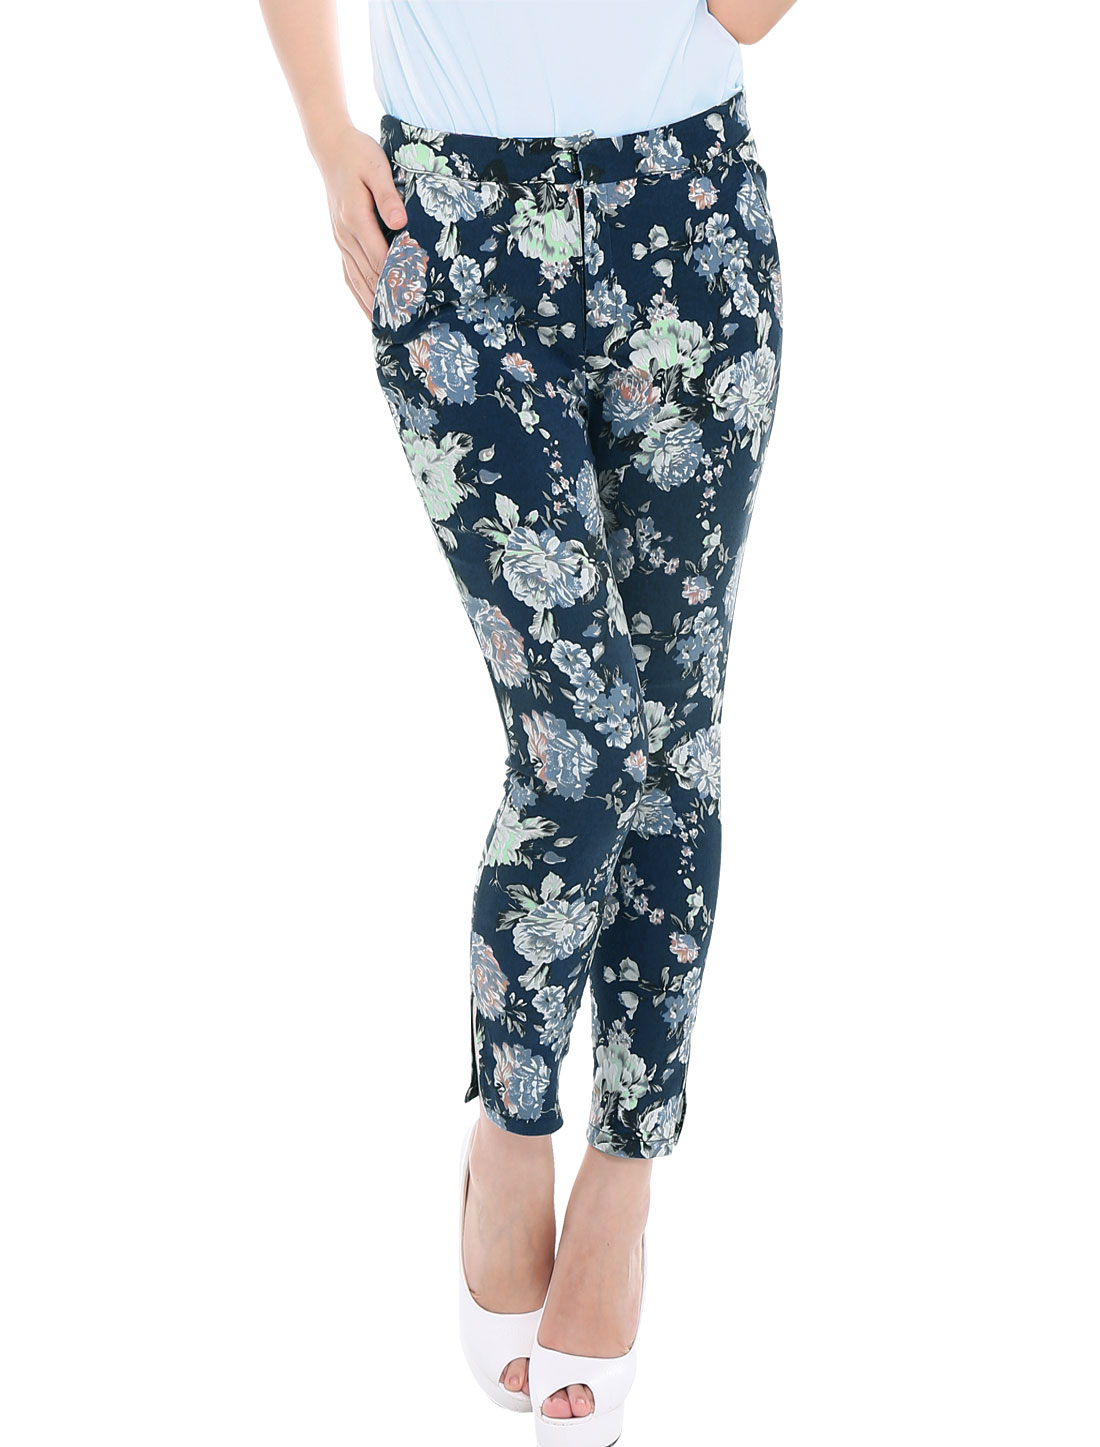 Lady Floral Print Zip Fly Hook Eye Closure Stretchy Cropped Pants Navy XS